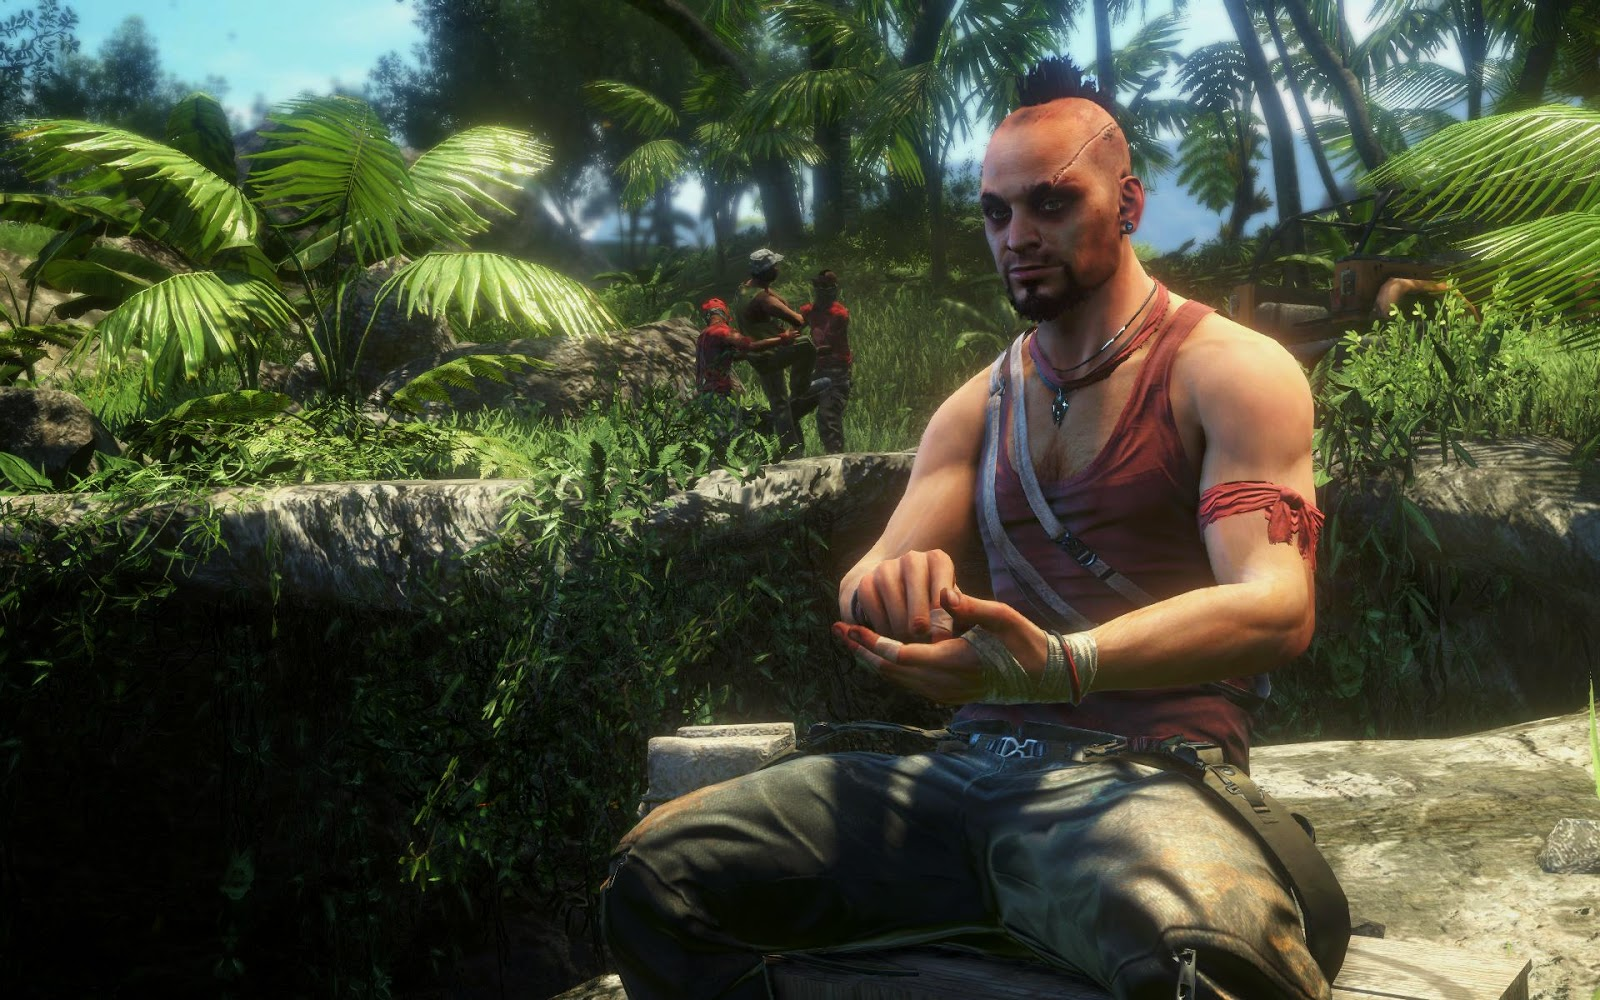 how to get far cry 3 for free